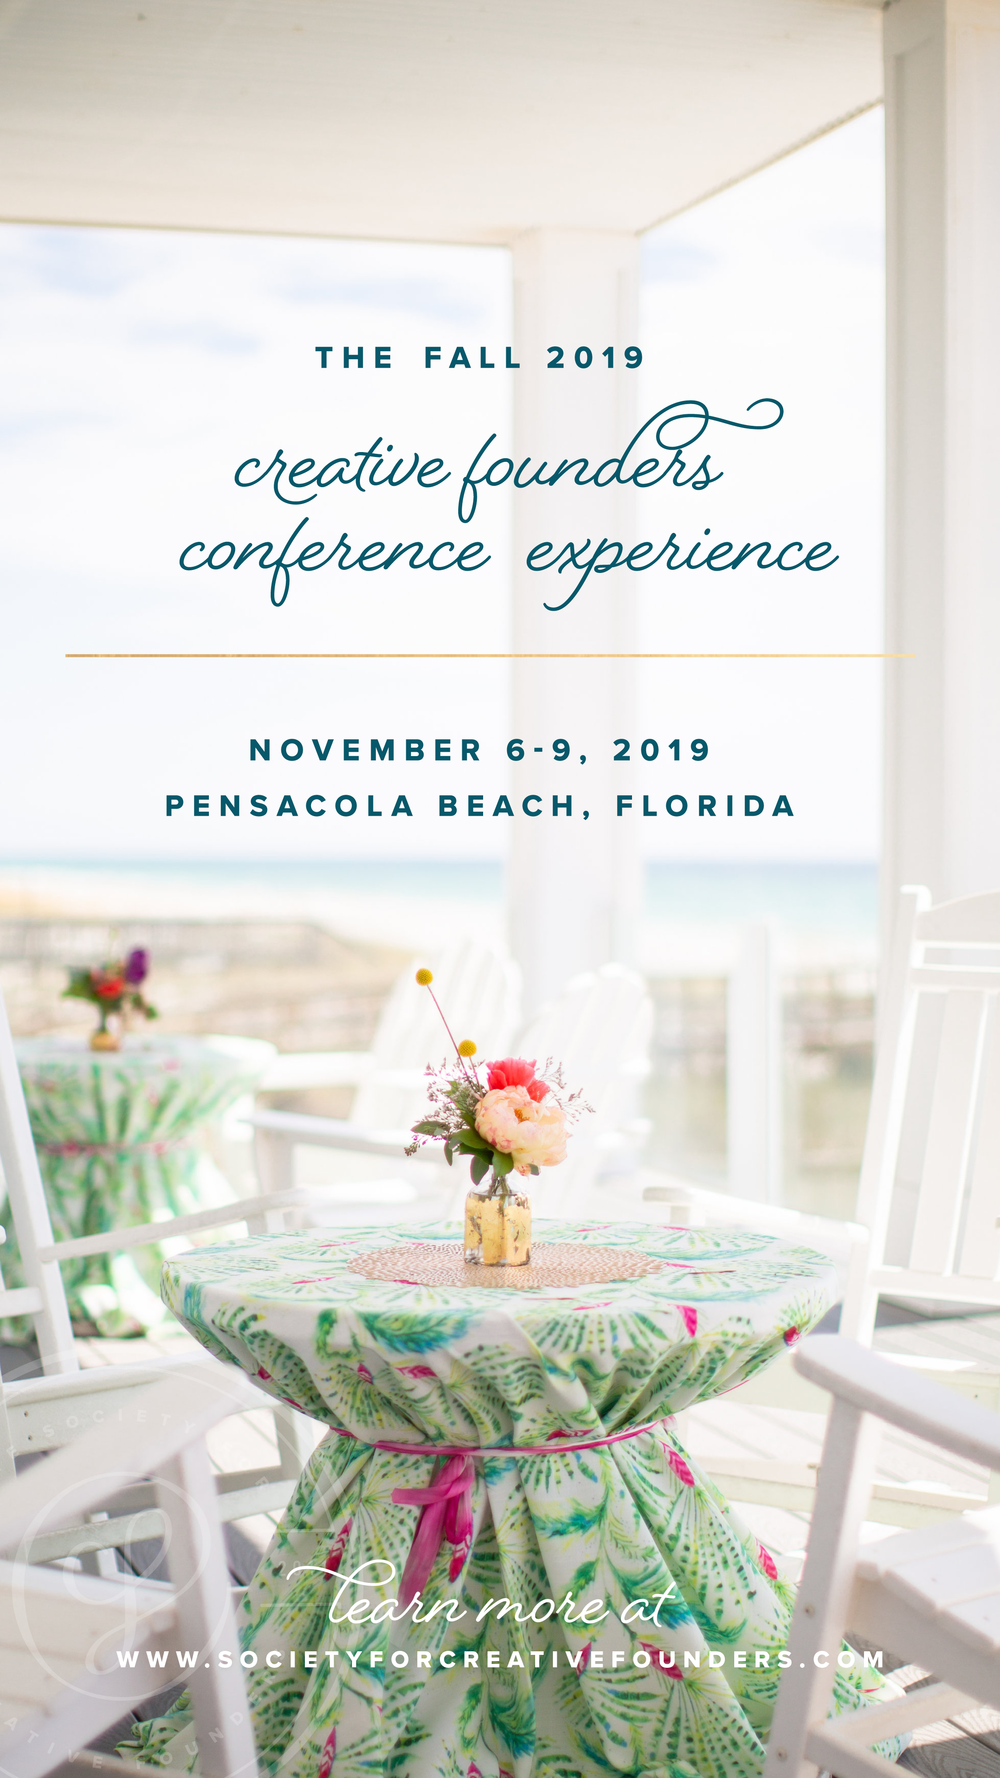 Registration is now open for the Society for Creative Founders 2019 Conference